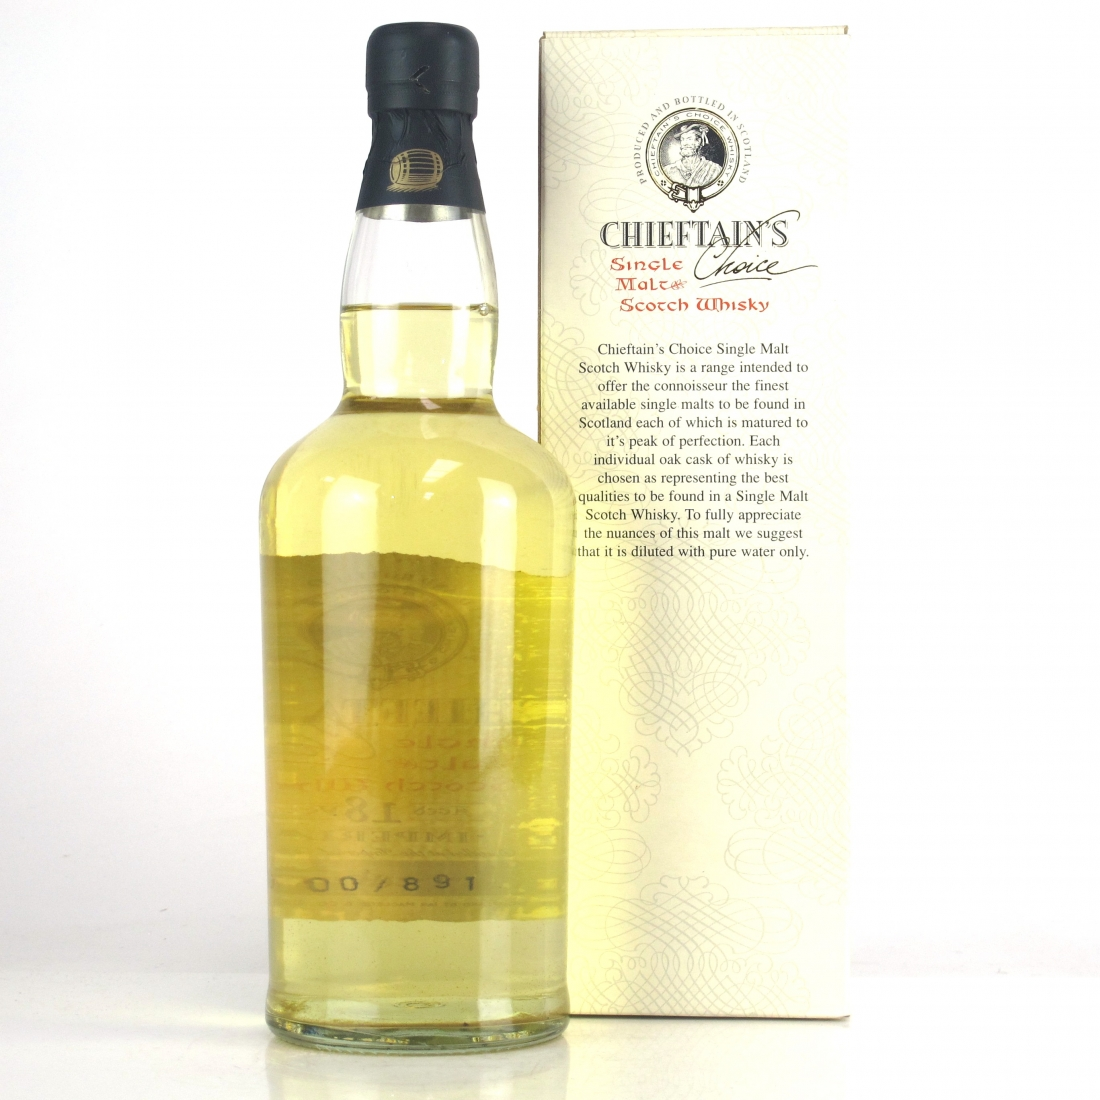 Imperial 1982 Chieftain's Choice 18 Year Old